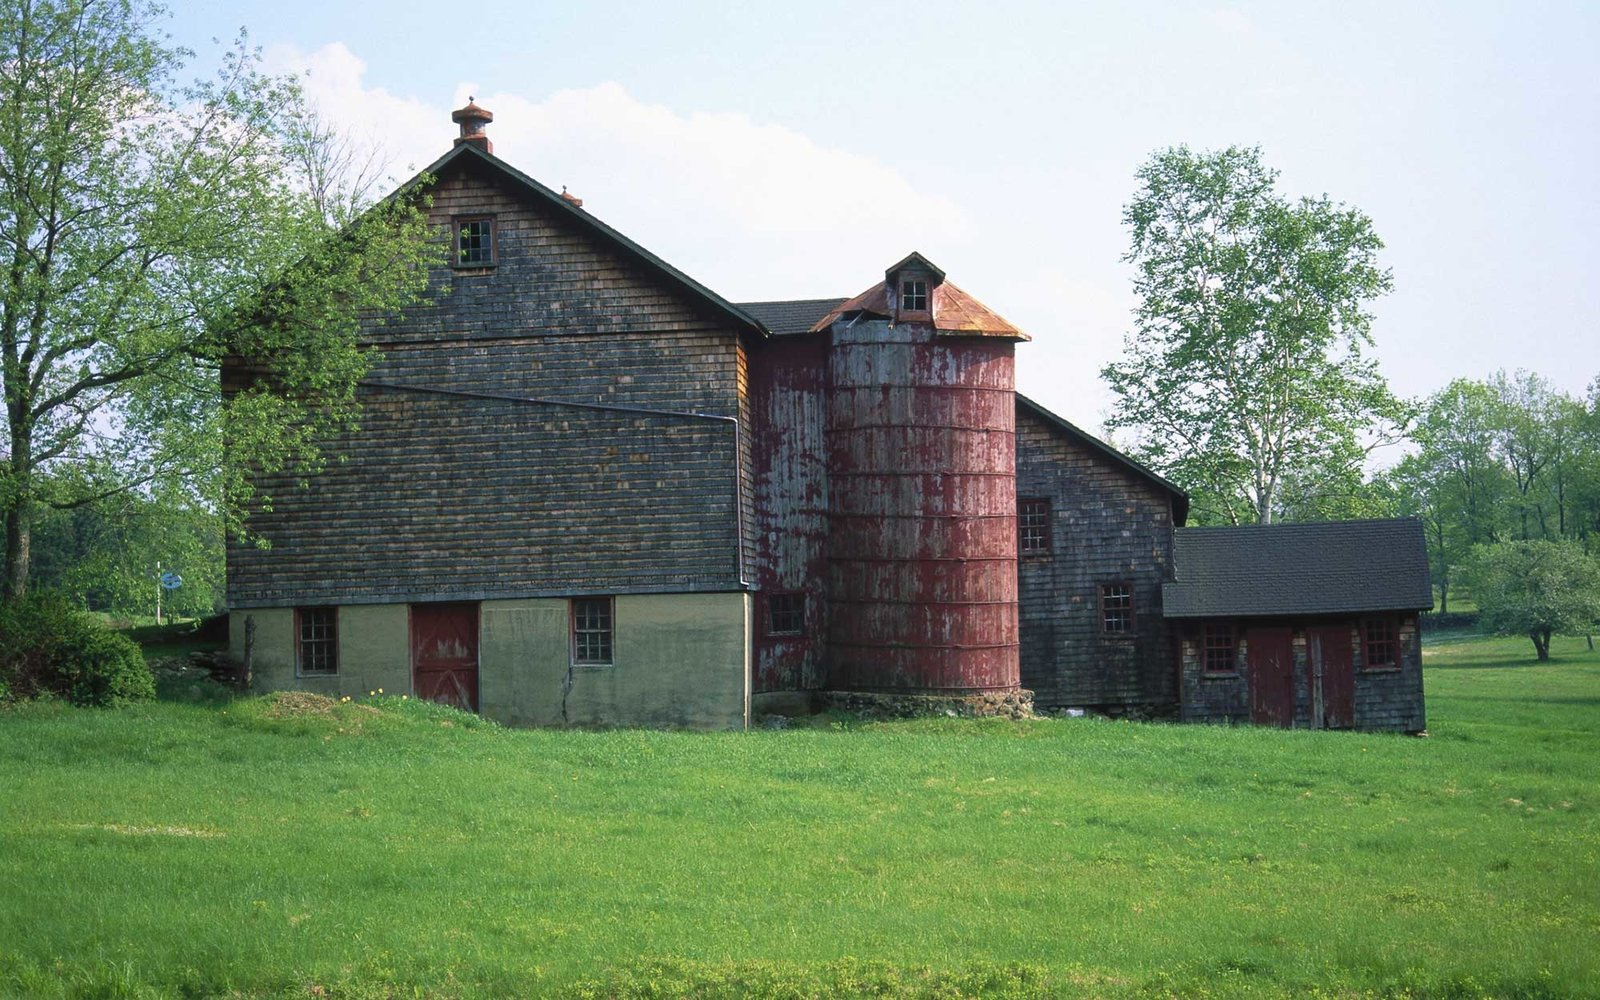 Great Barrington, MA, Barn and silo